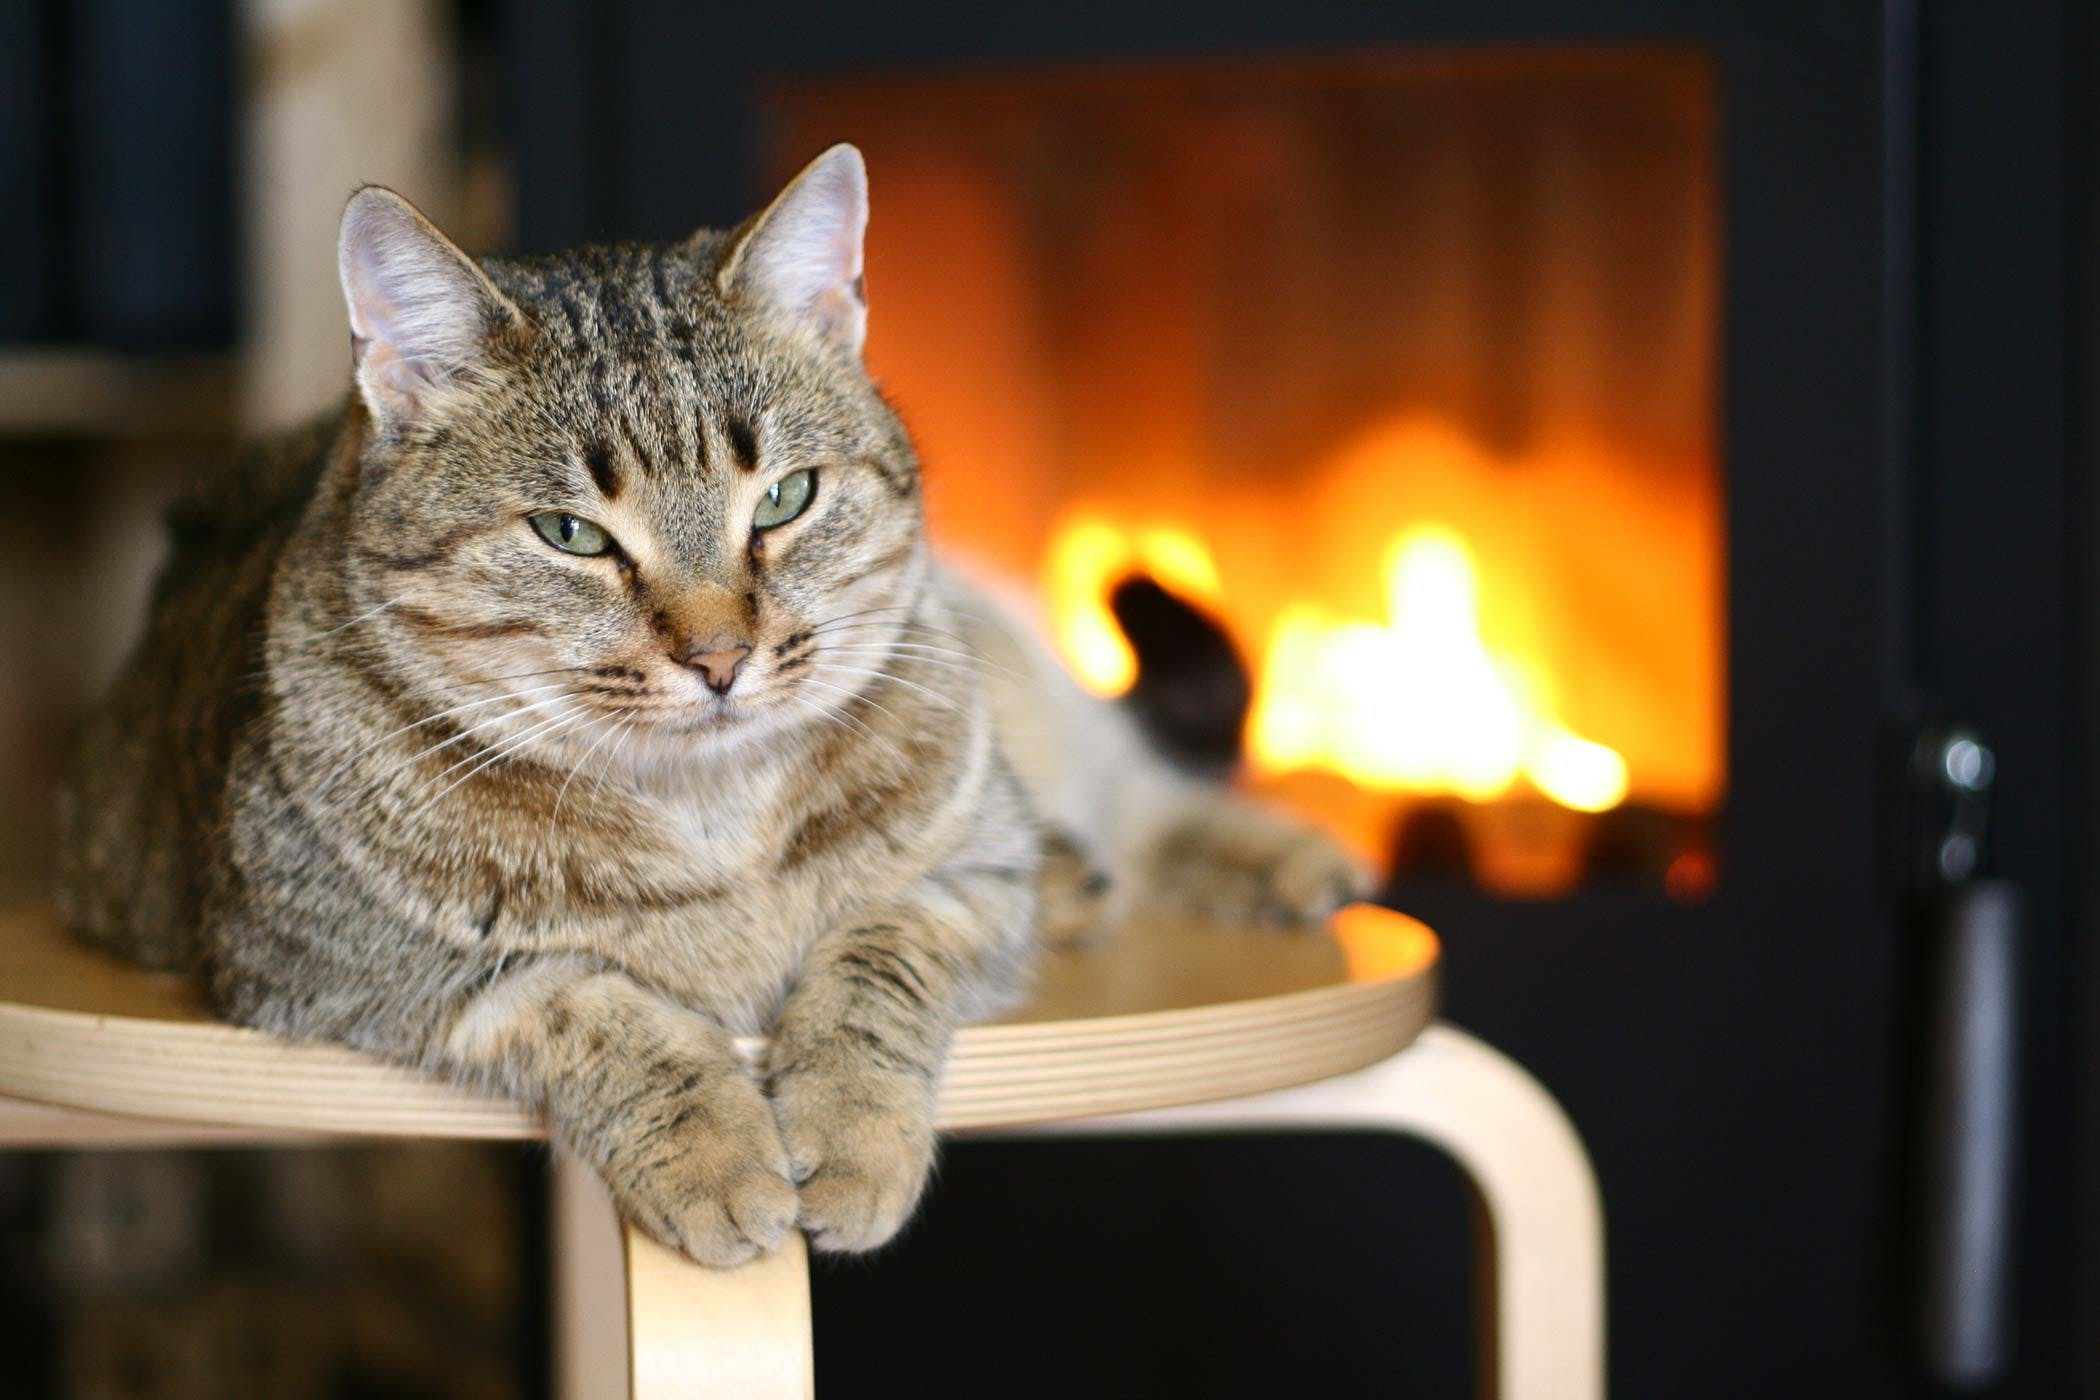 Colonic Ulcer in Cats